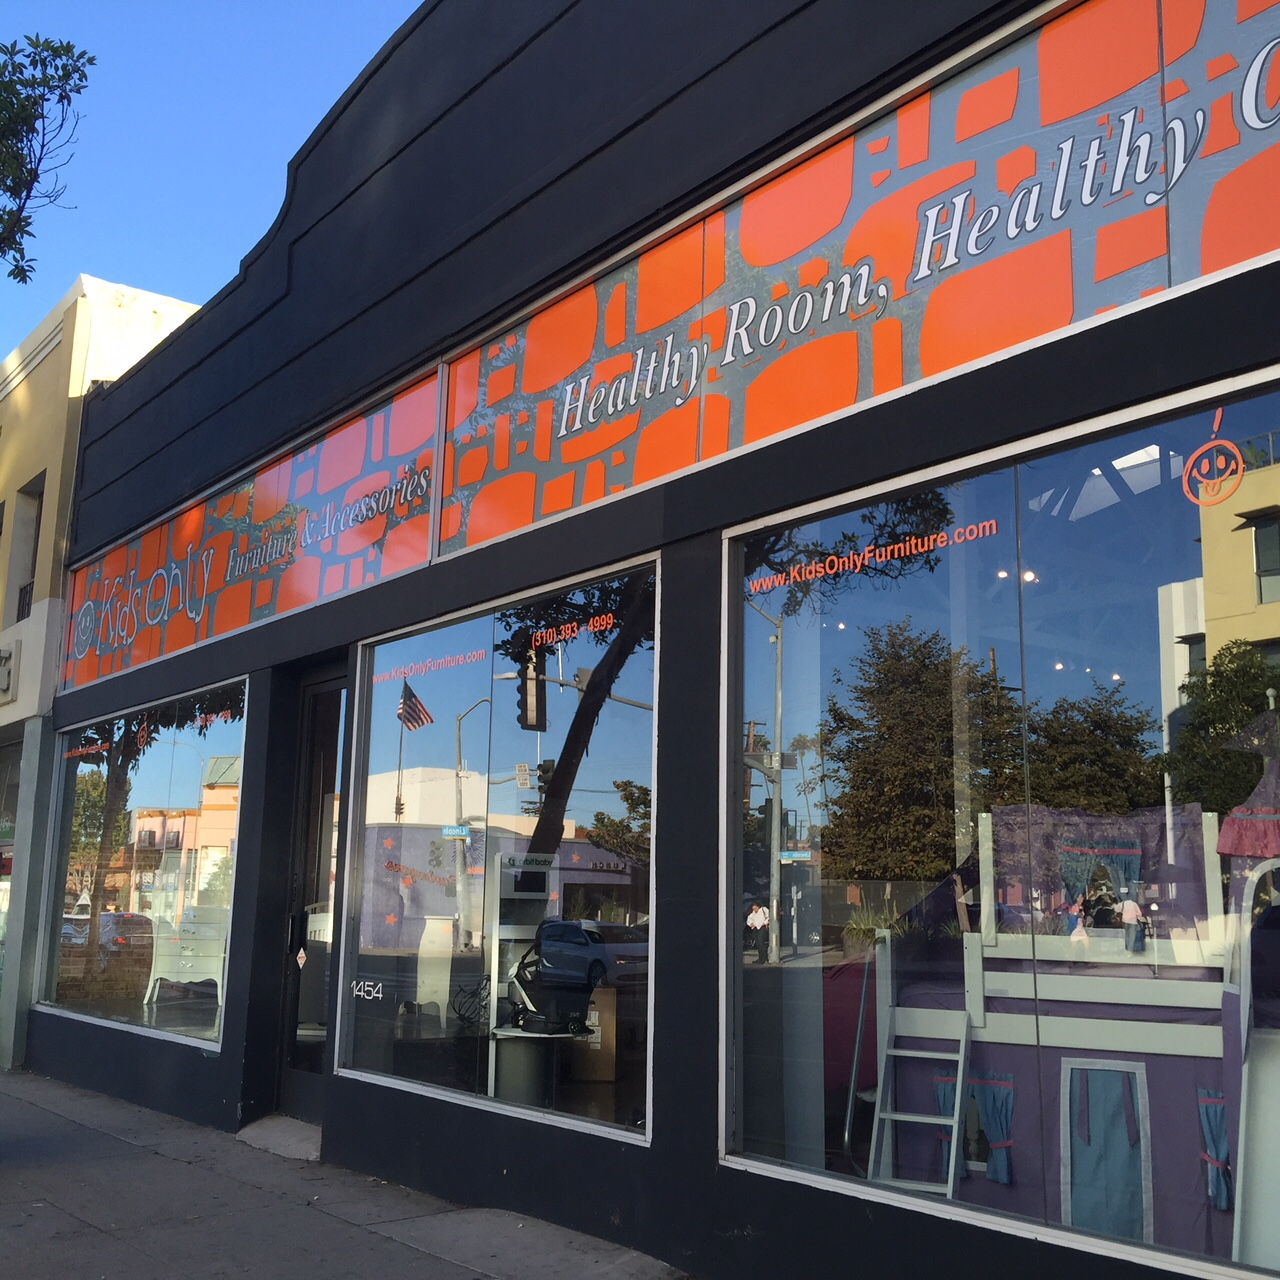 Childrens Furniture Store, Baby Furniture Store, Kids Furniture Store, Baby  Gear. 1454 Lincoln Boulevard, Santa Monica ...